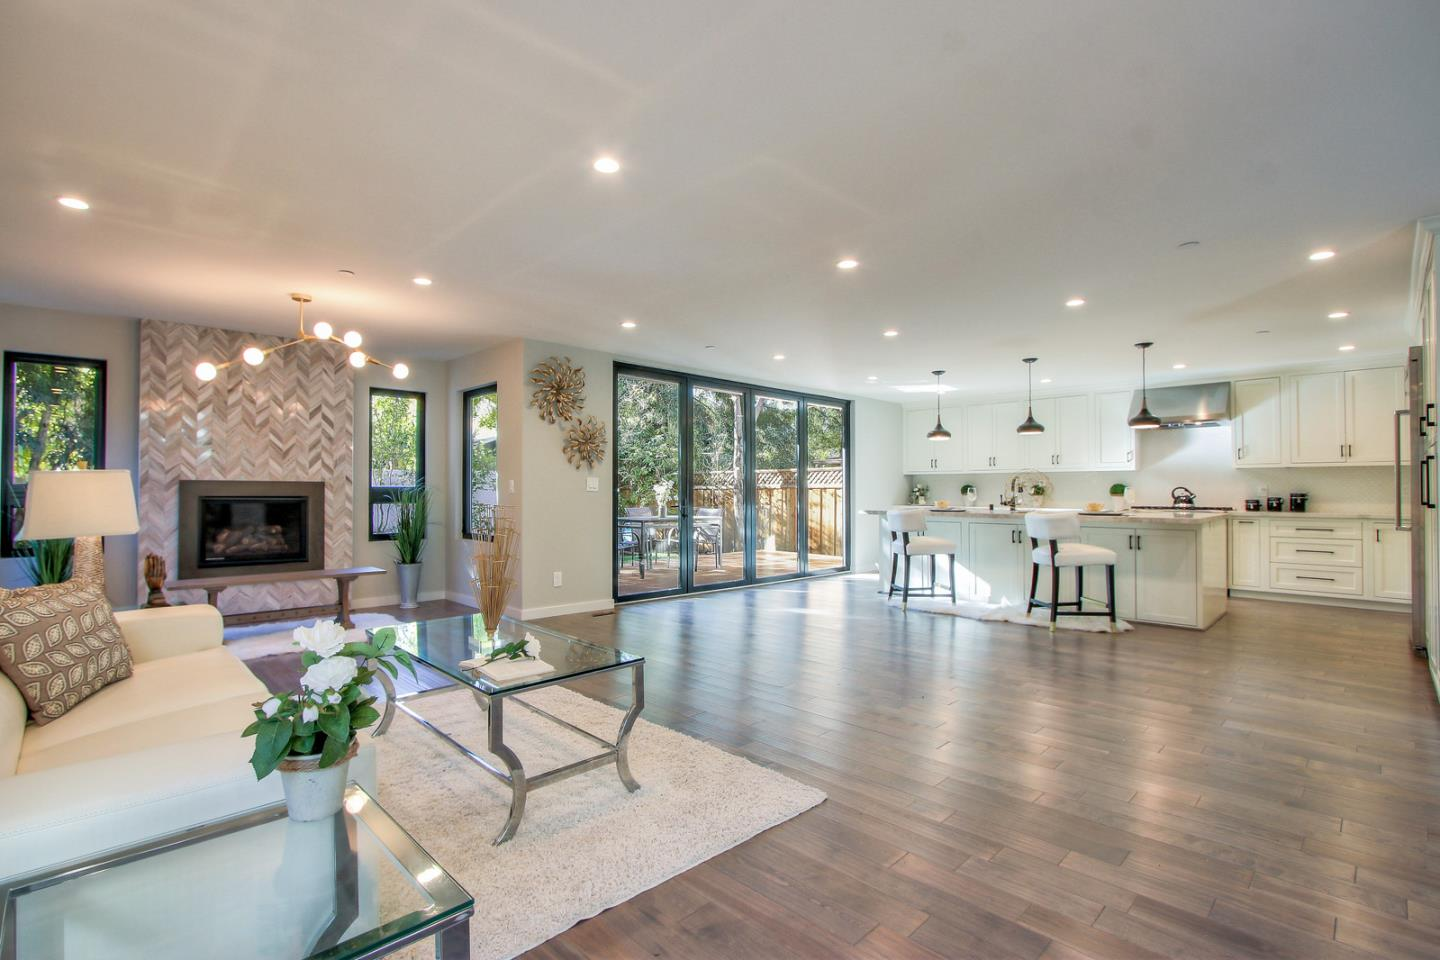 226 SELBY LN, ATHERTON, CA 94027